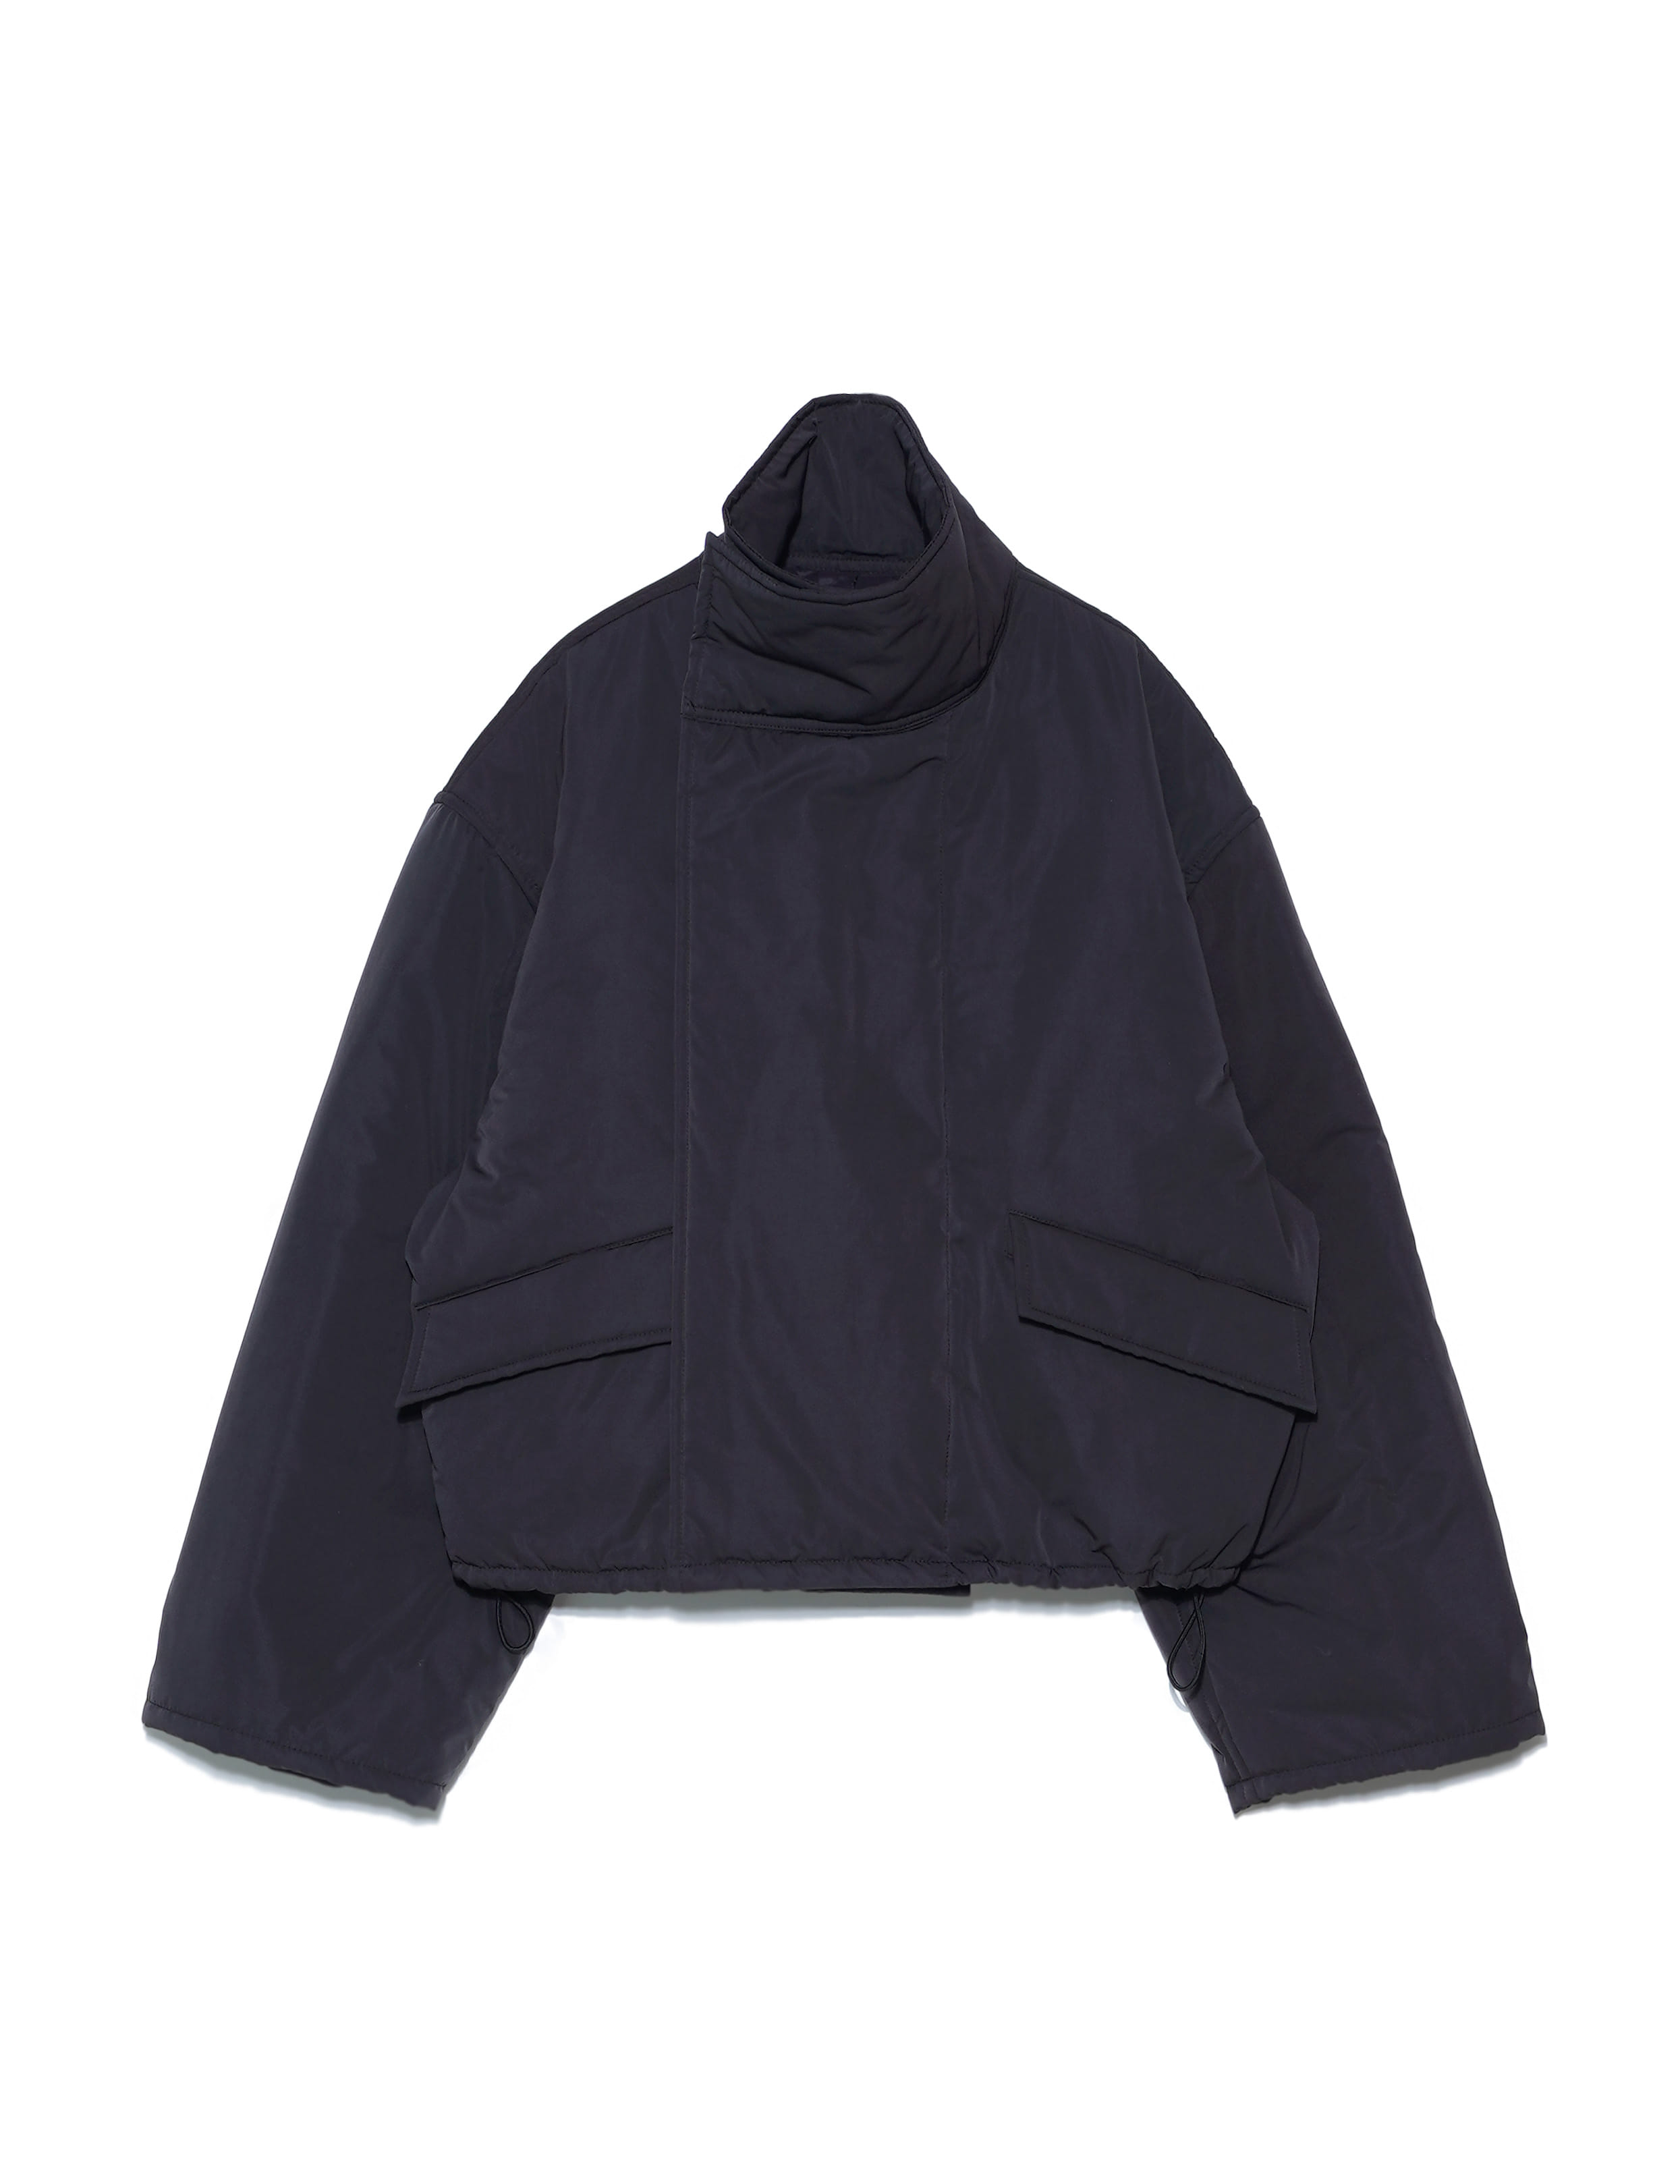 TIBET COAT SHORT (BLACK)